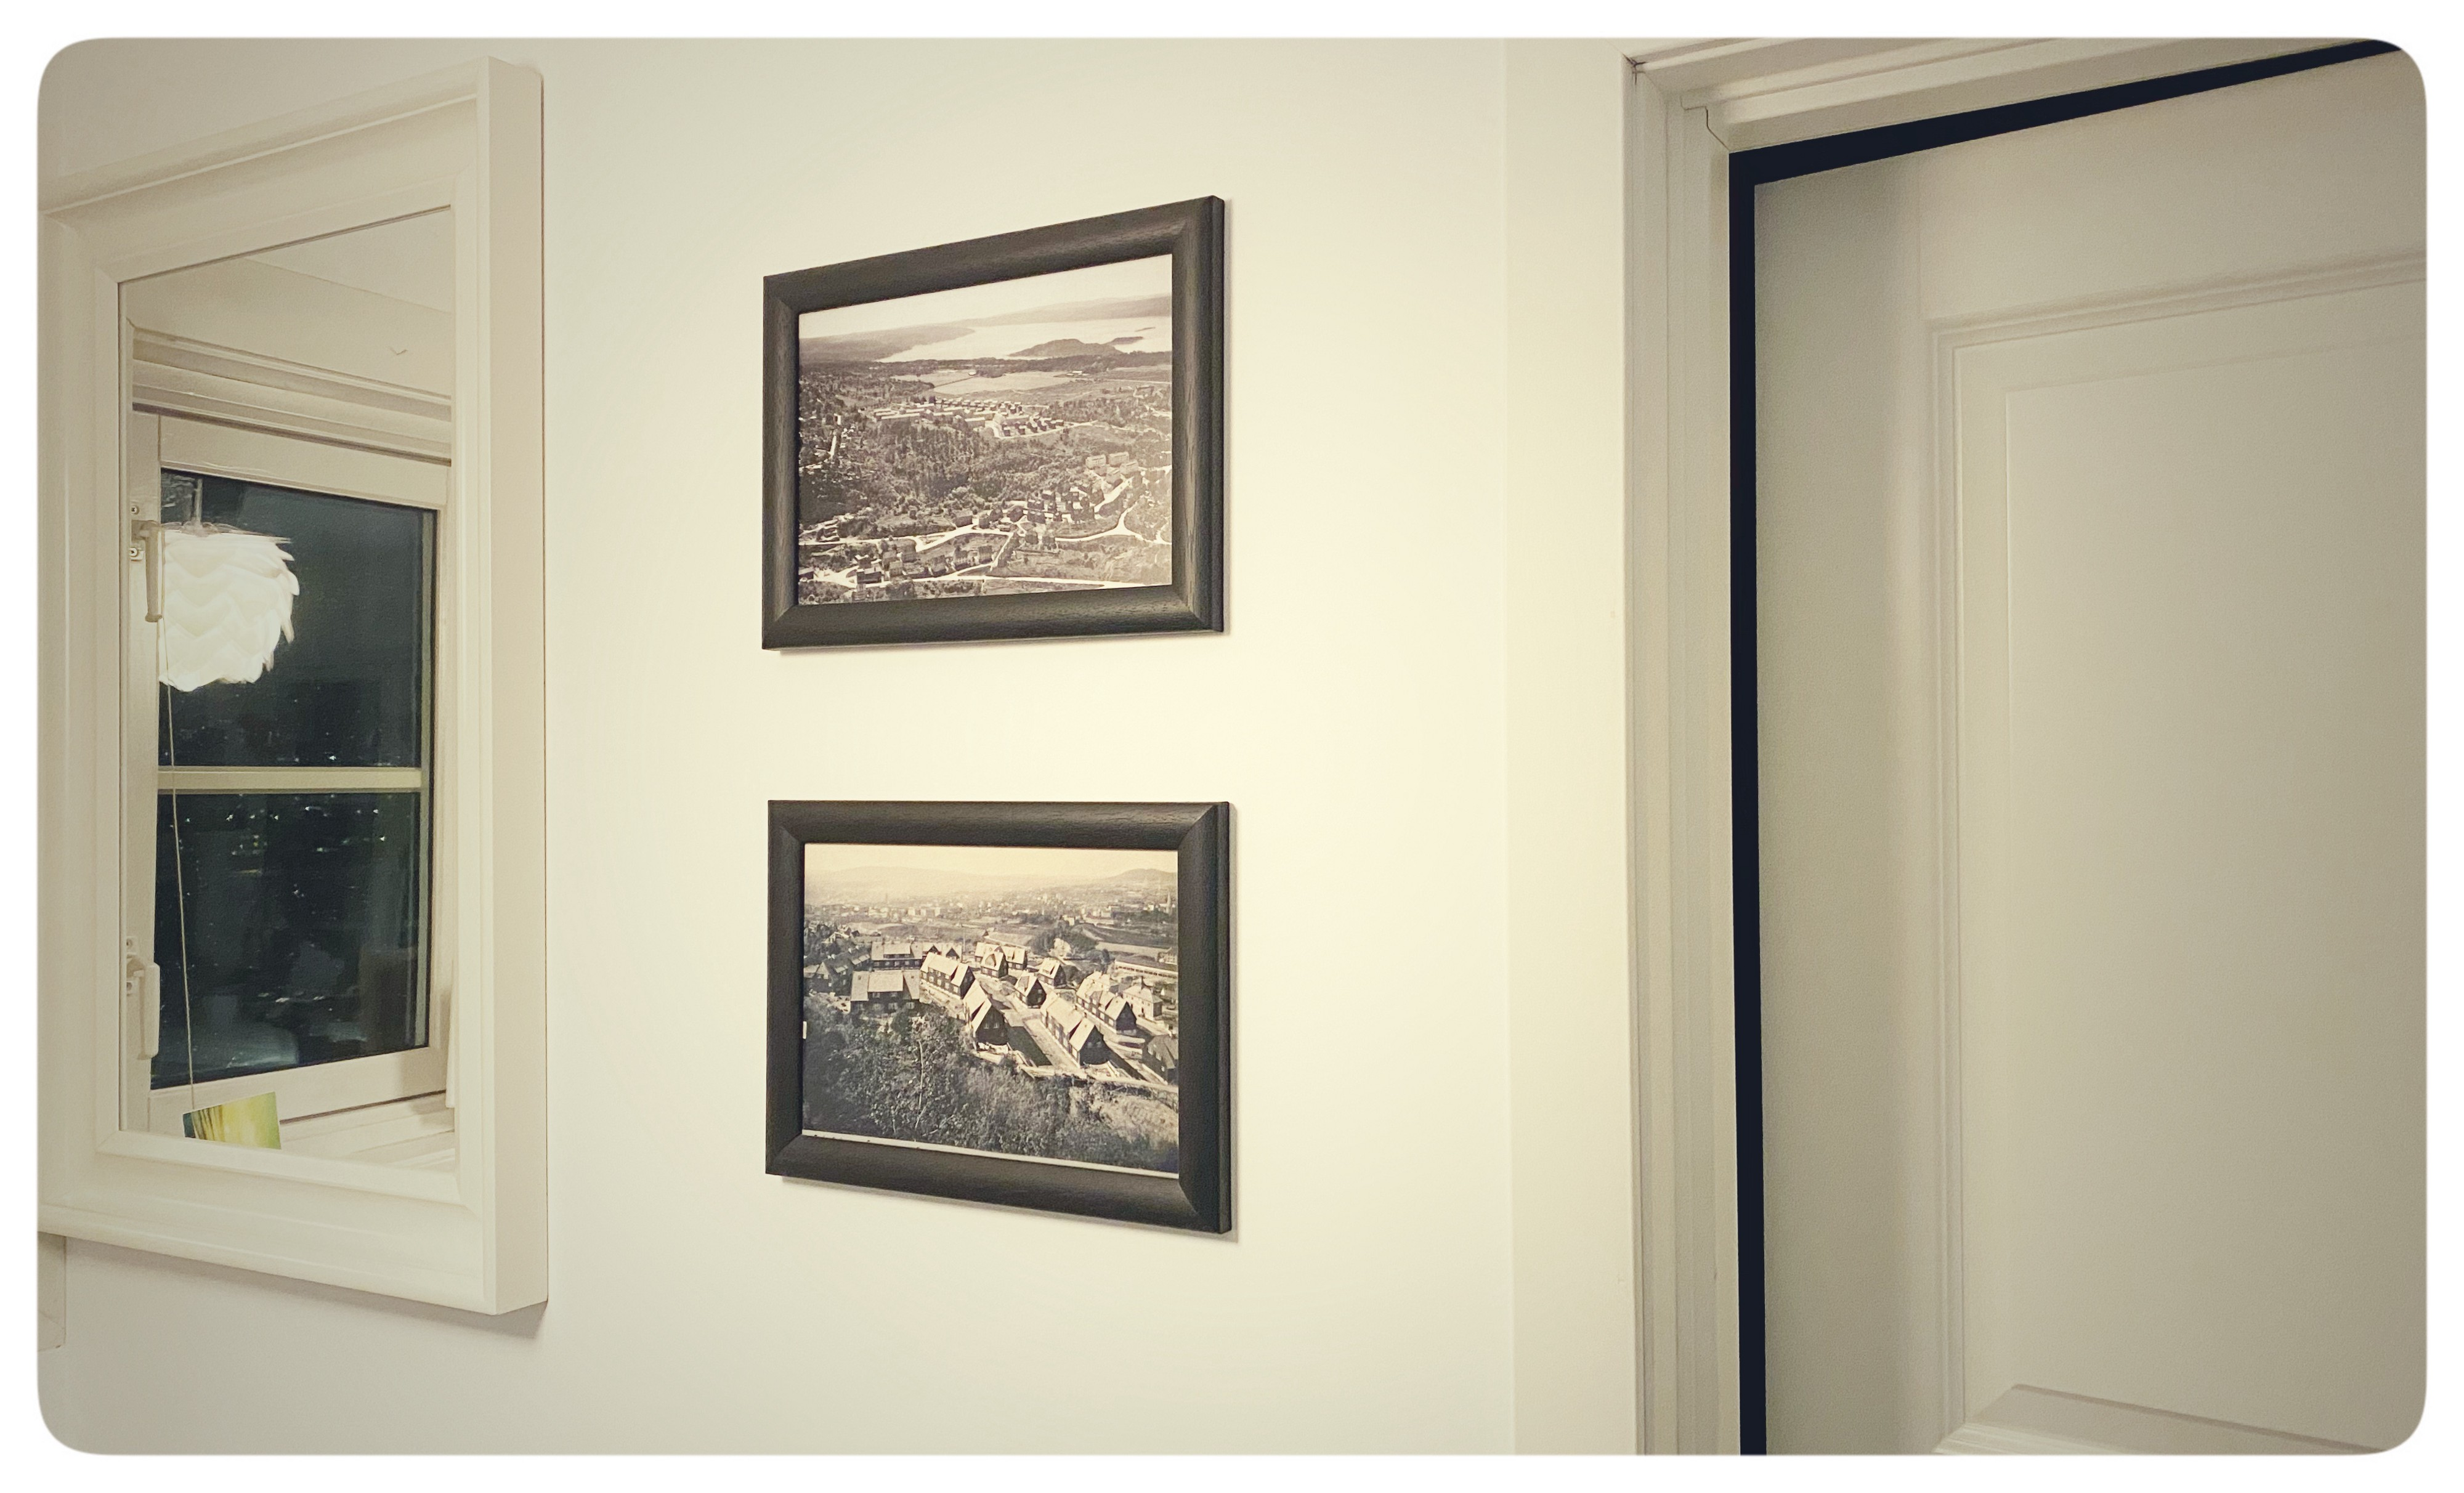 Use Python To Hang Your Picture Frames On The Wall By Martin Andersson Aaberge Better Programming Medium